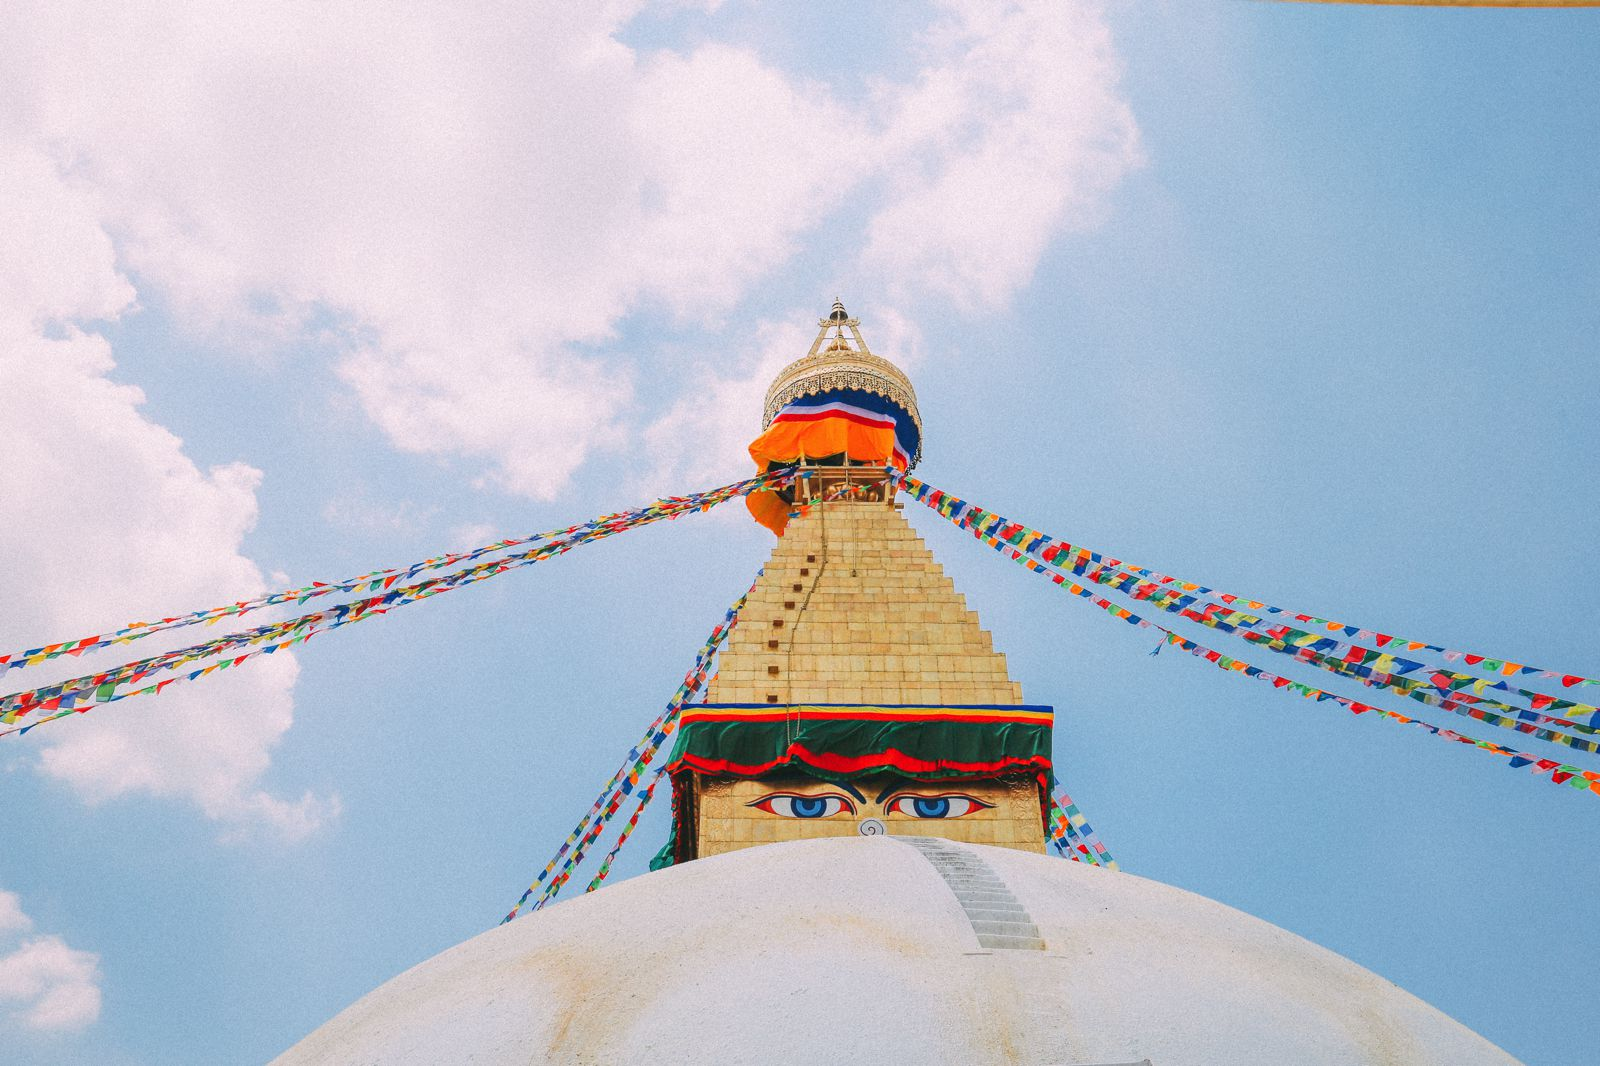 The UNESCO World Heritage Site Of Boudhanath Stupa In Kathmandu, Nepal (10)